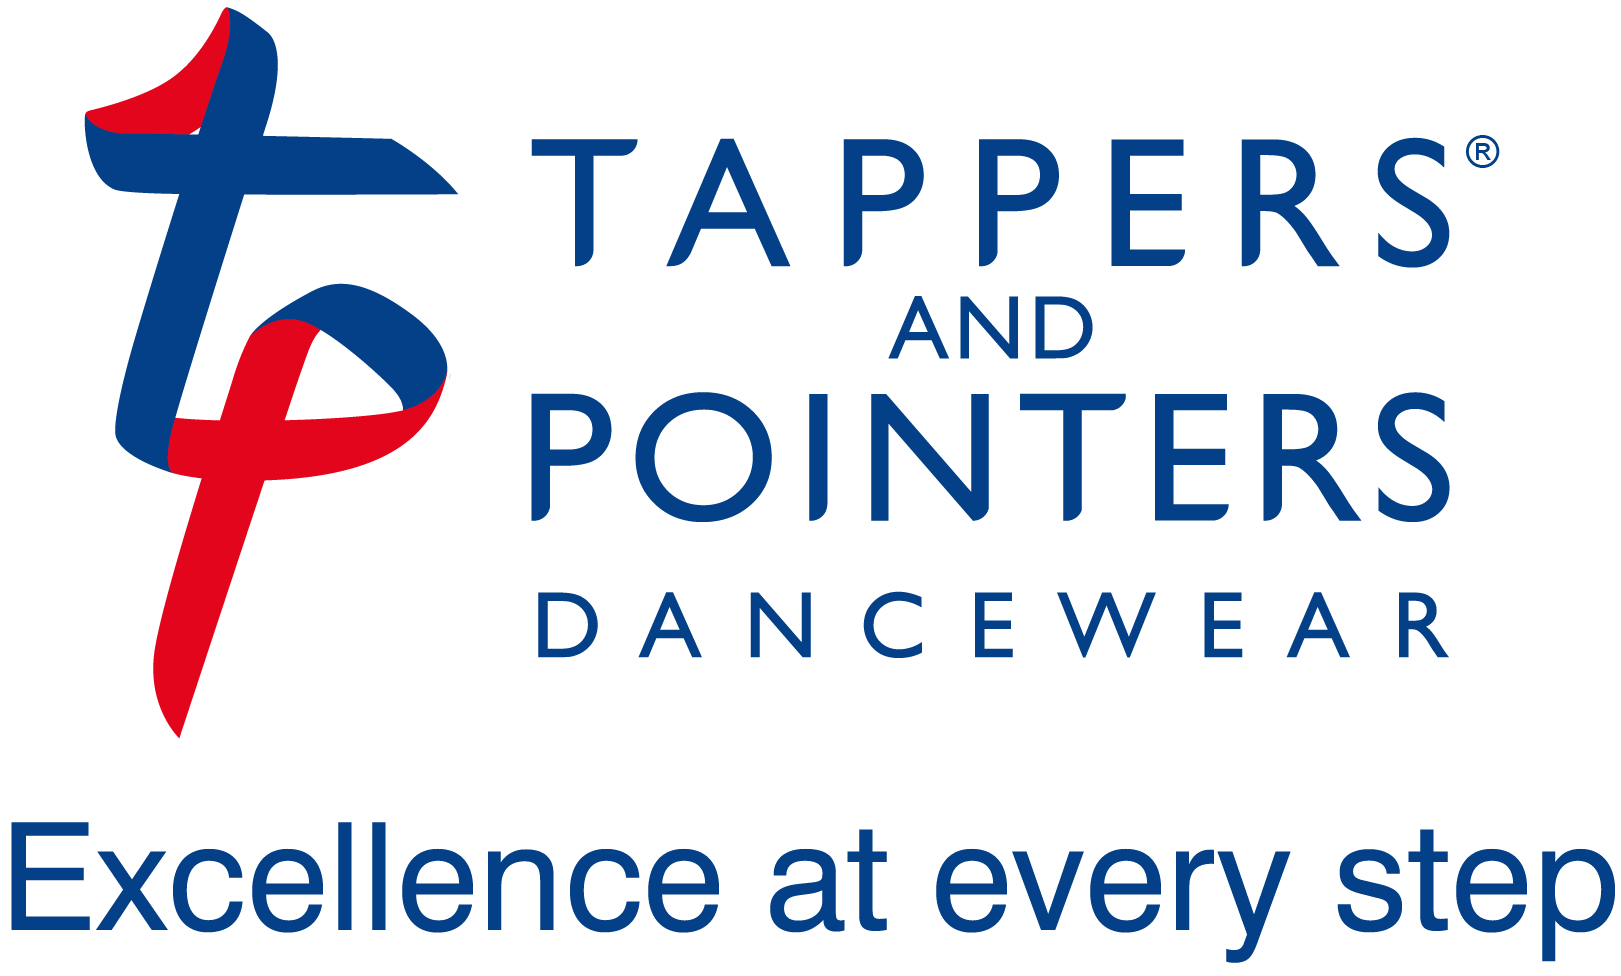 Tappers and Pointers Dancewear